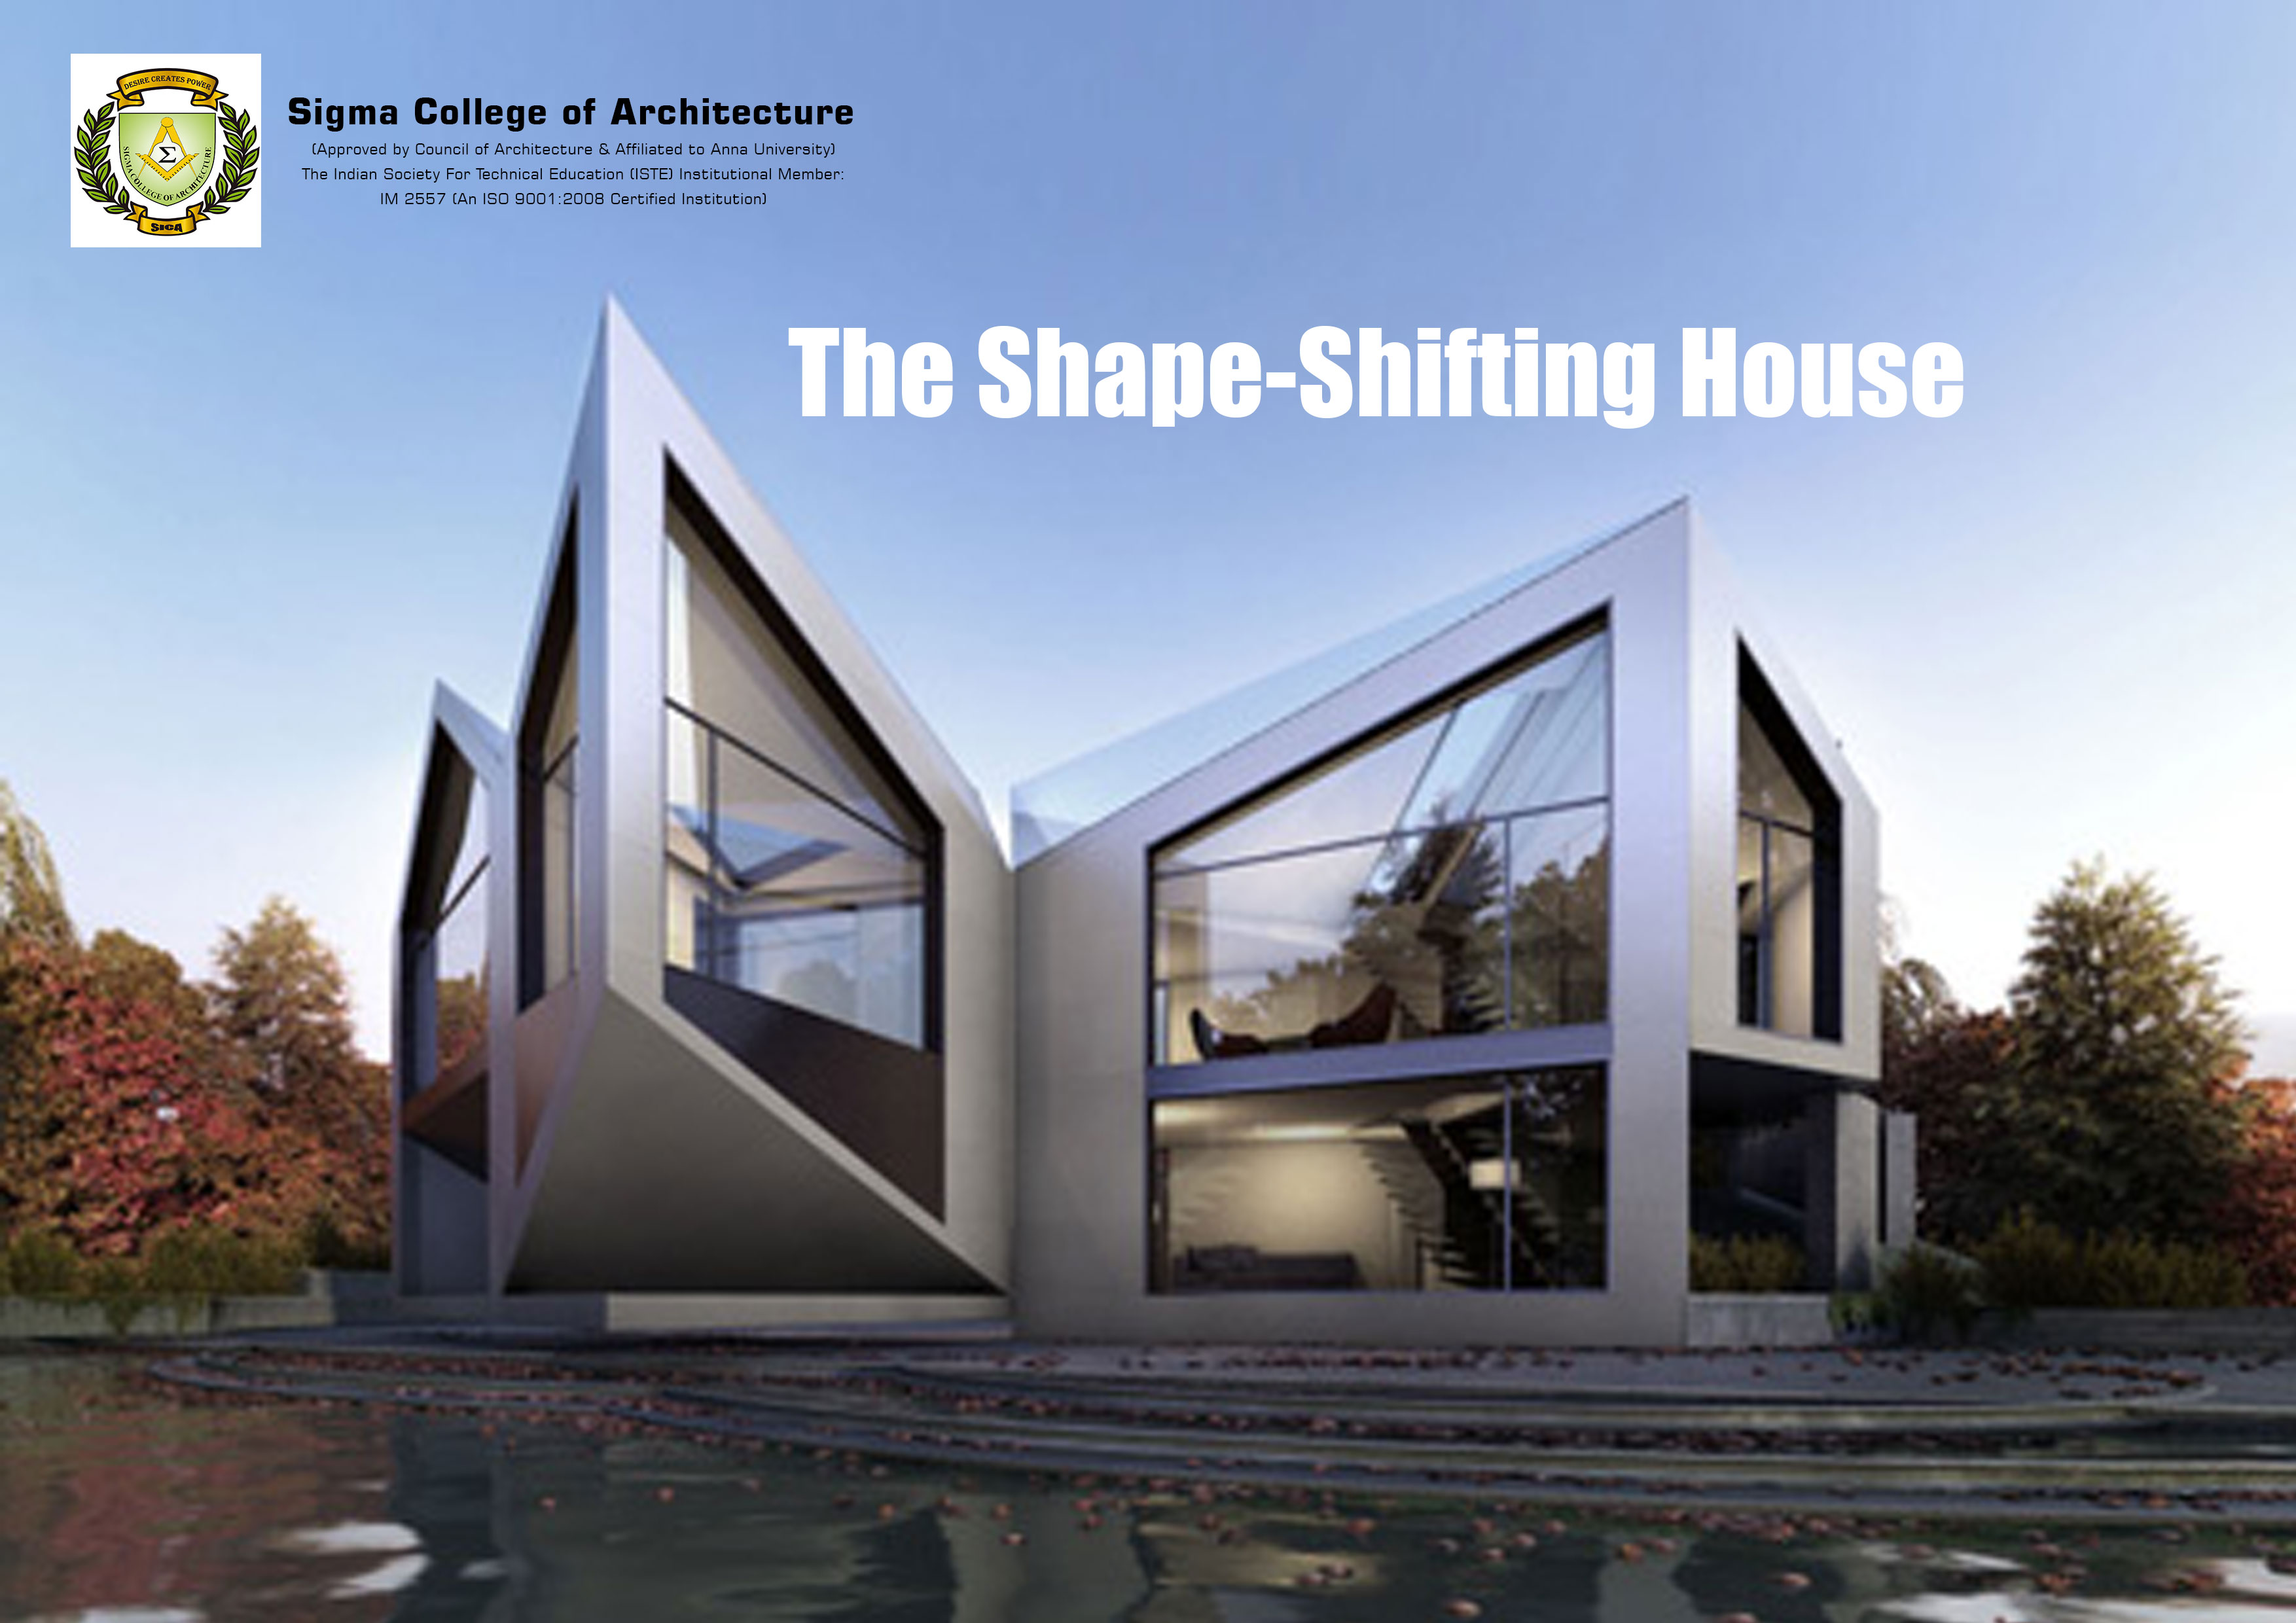 The Shape-Shifting House